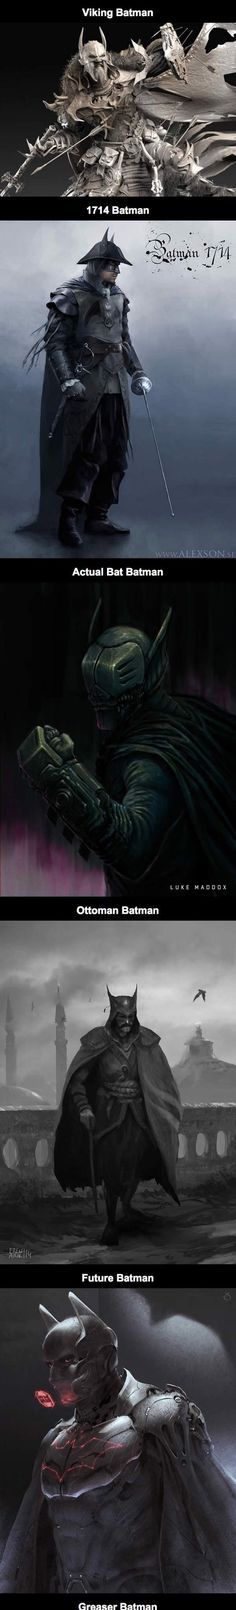 Awesome Alternate Fan Art Takes On Batman - Click to see all